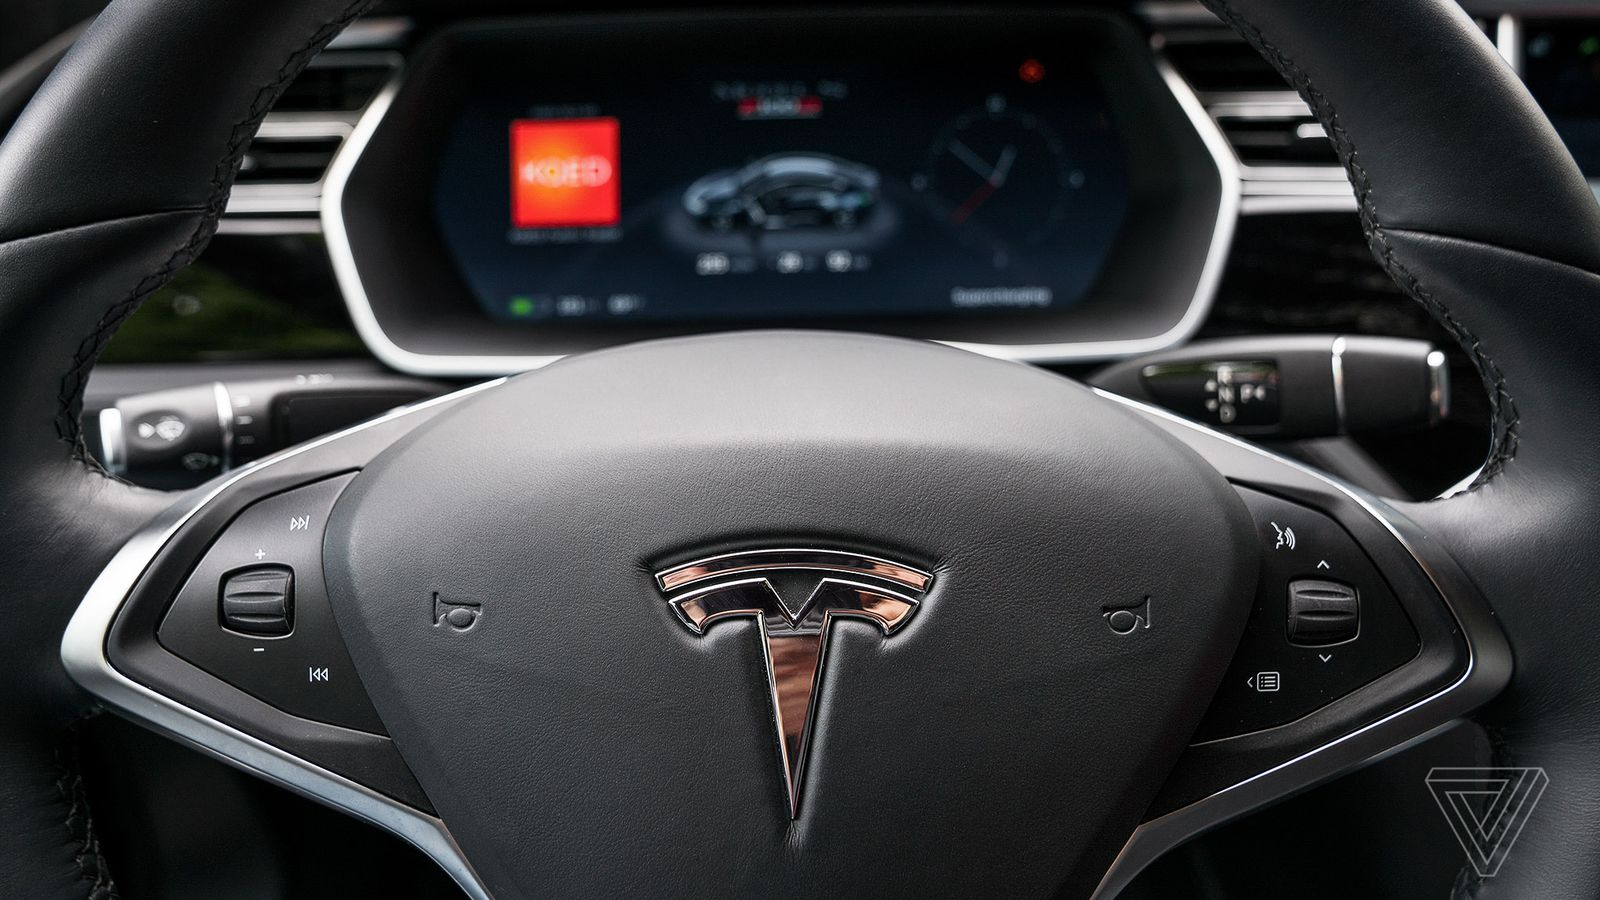 Tesla confirms it's in talks to build a factory in China ...